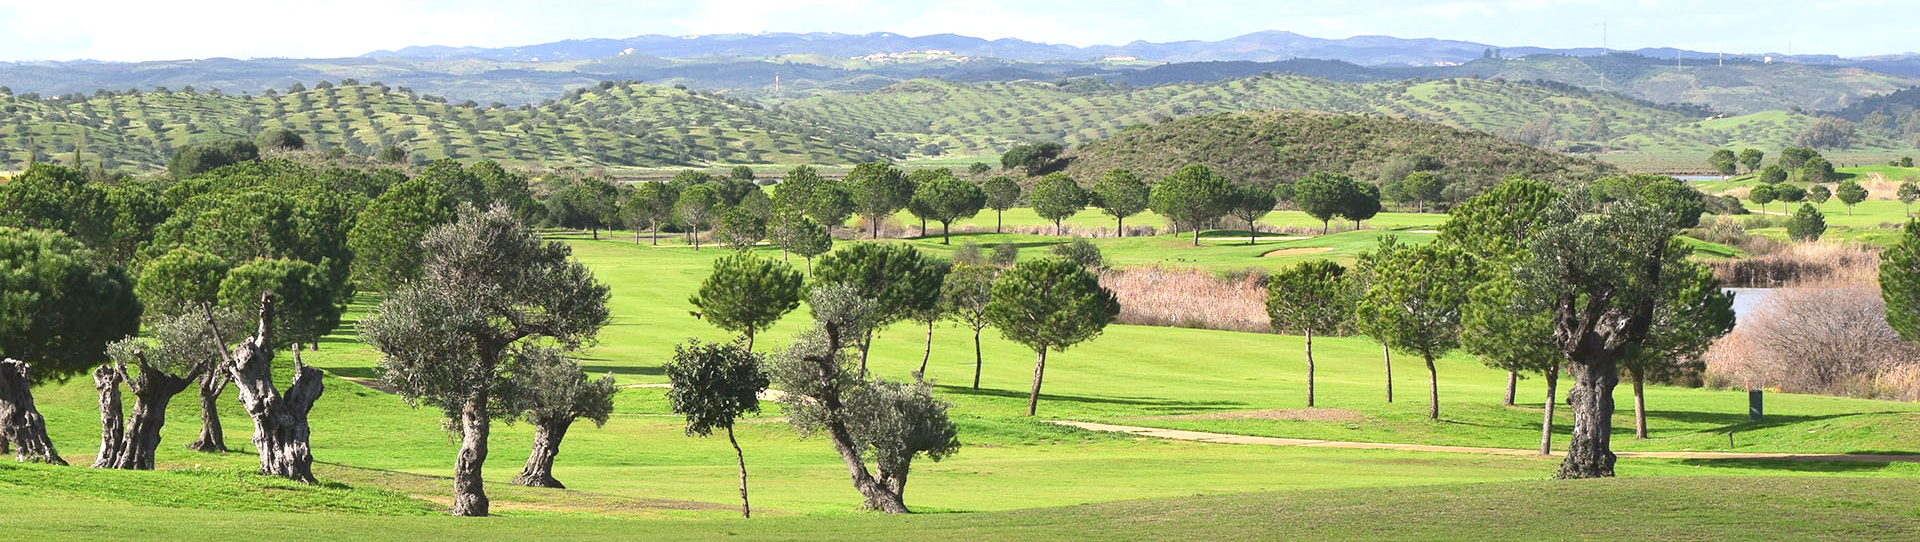 Valle Guadiana Links  - Photo 1